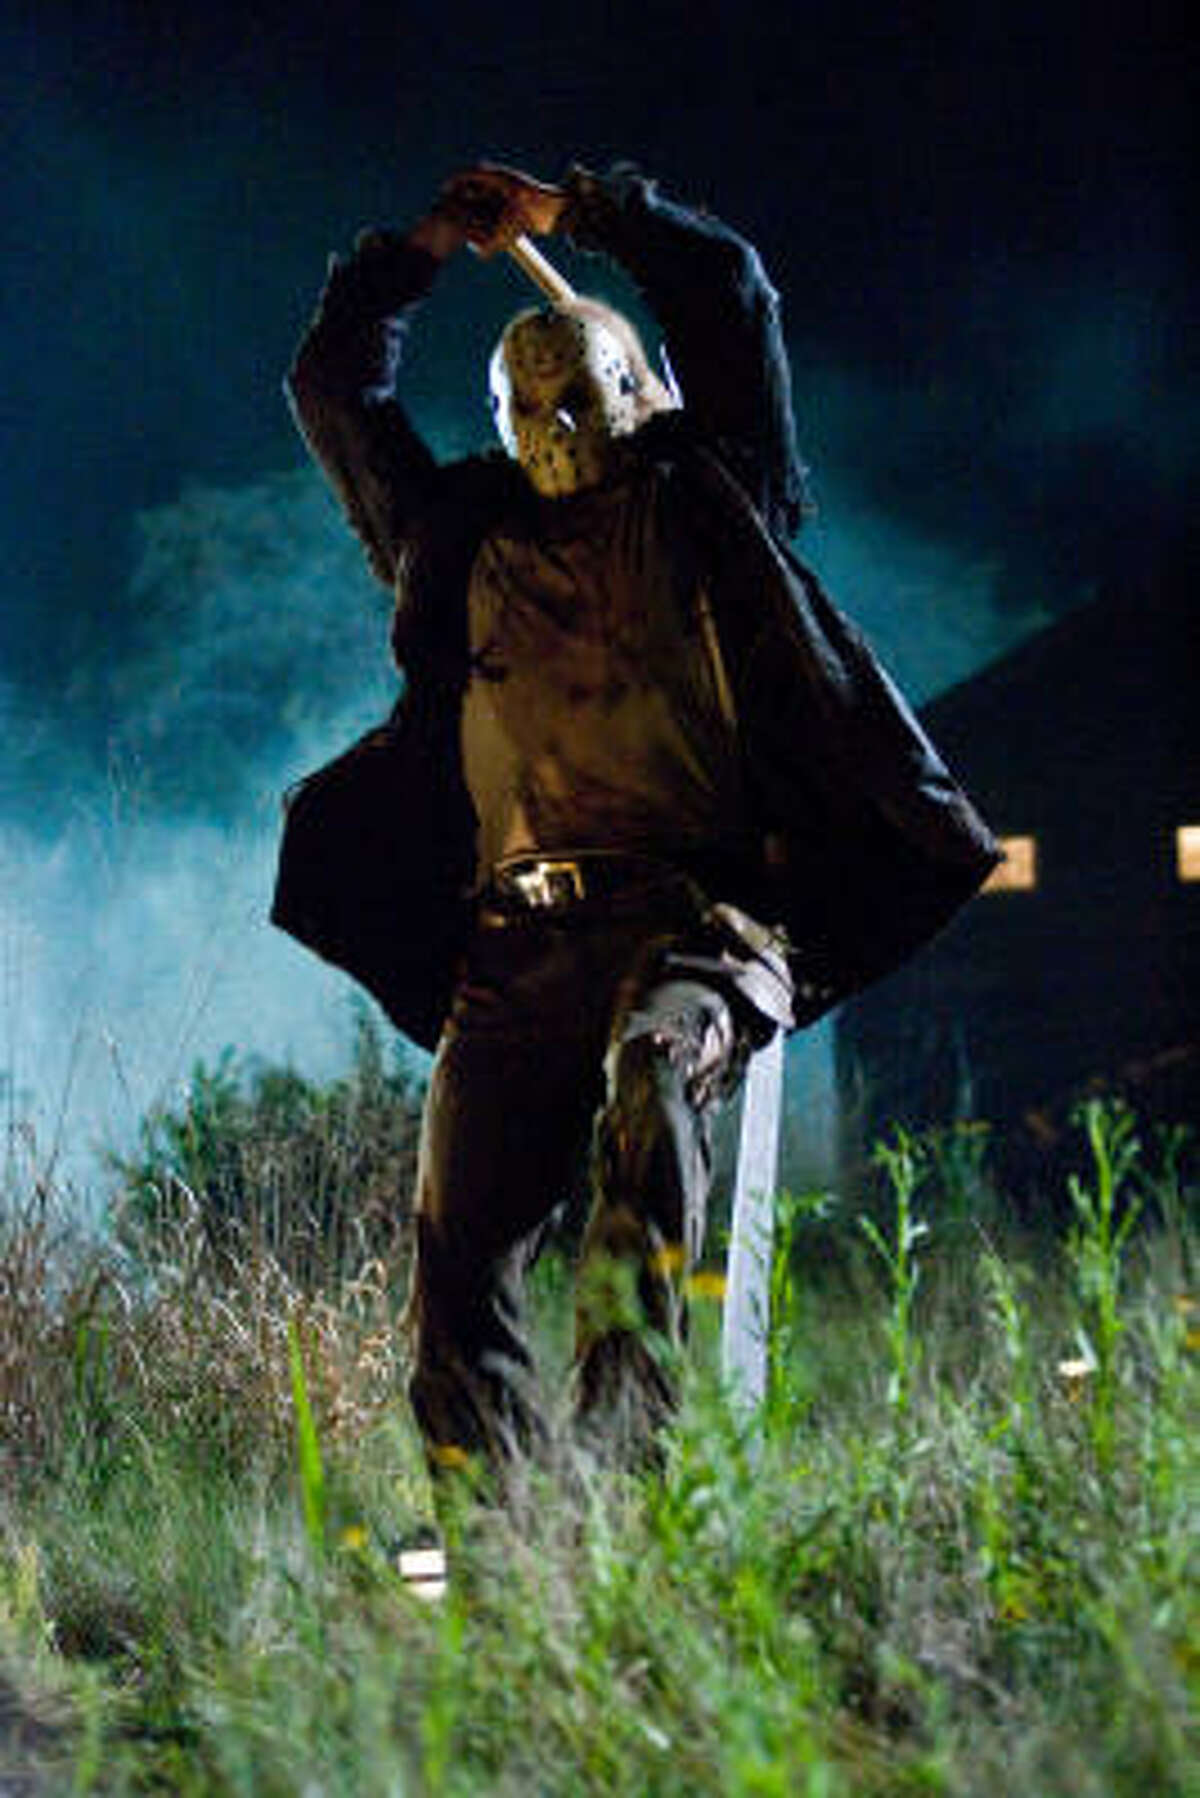 In Friday the 13th, a group of young adults discover a boarded up Camp Crystal Lake, where they soon encounter Jason Voorhees and his deadly intentions.